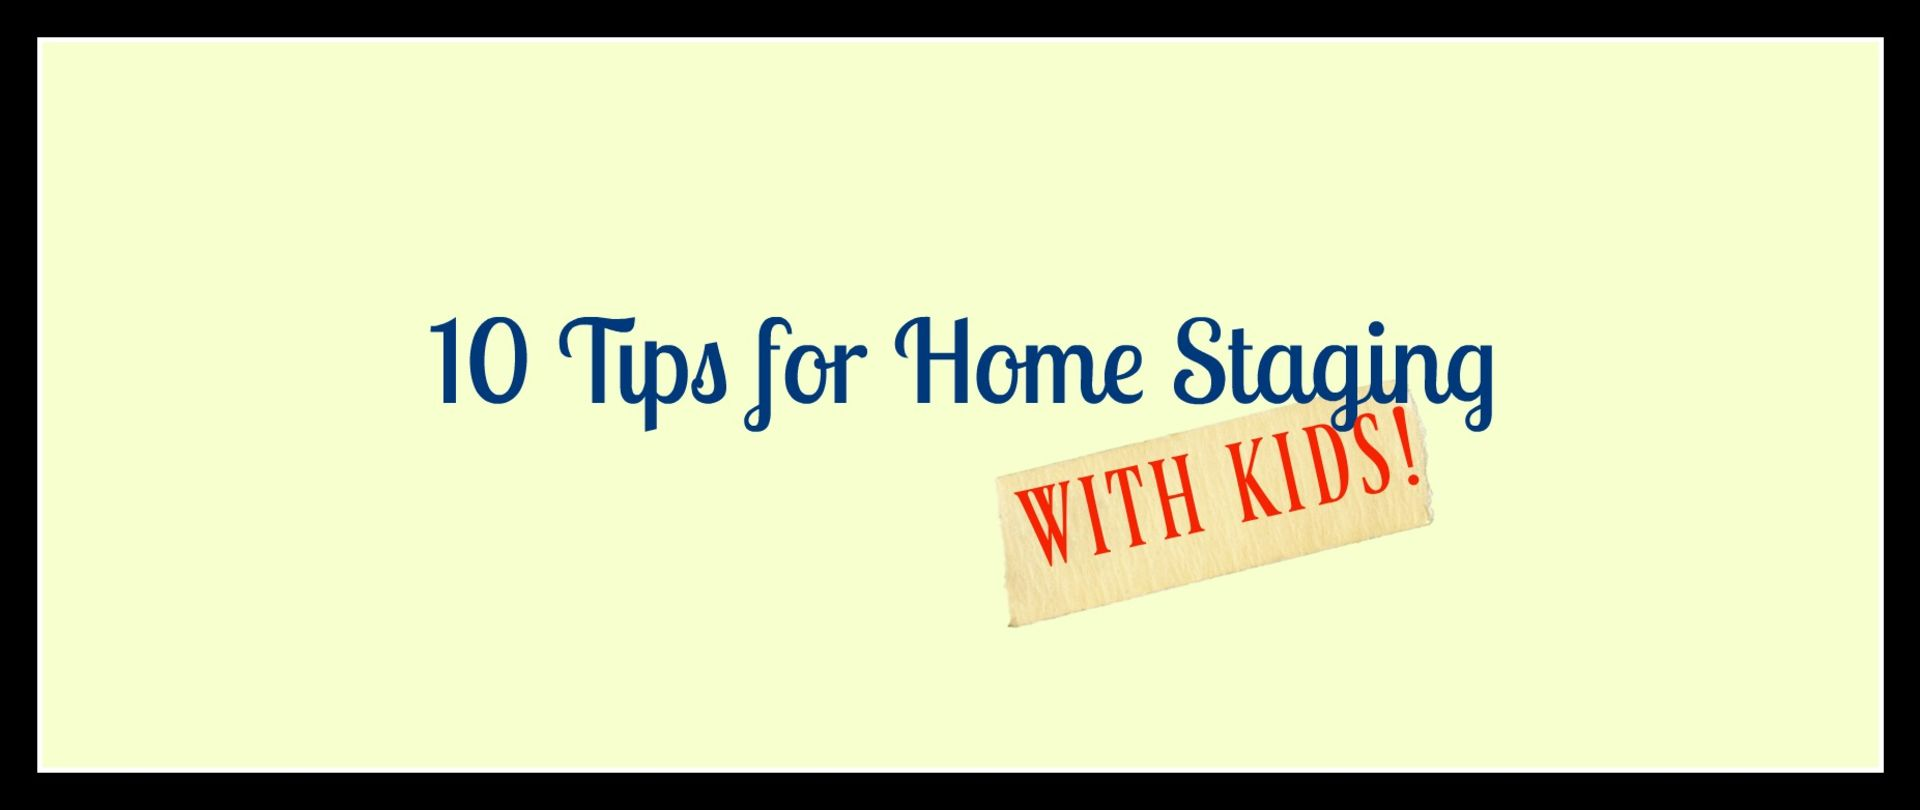 TEN TIPS FOR HOME STAGING WITH KIDS